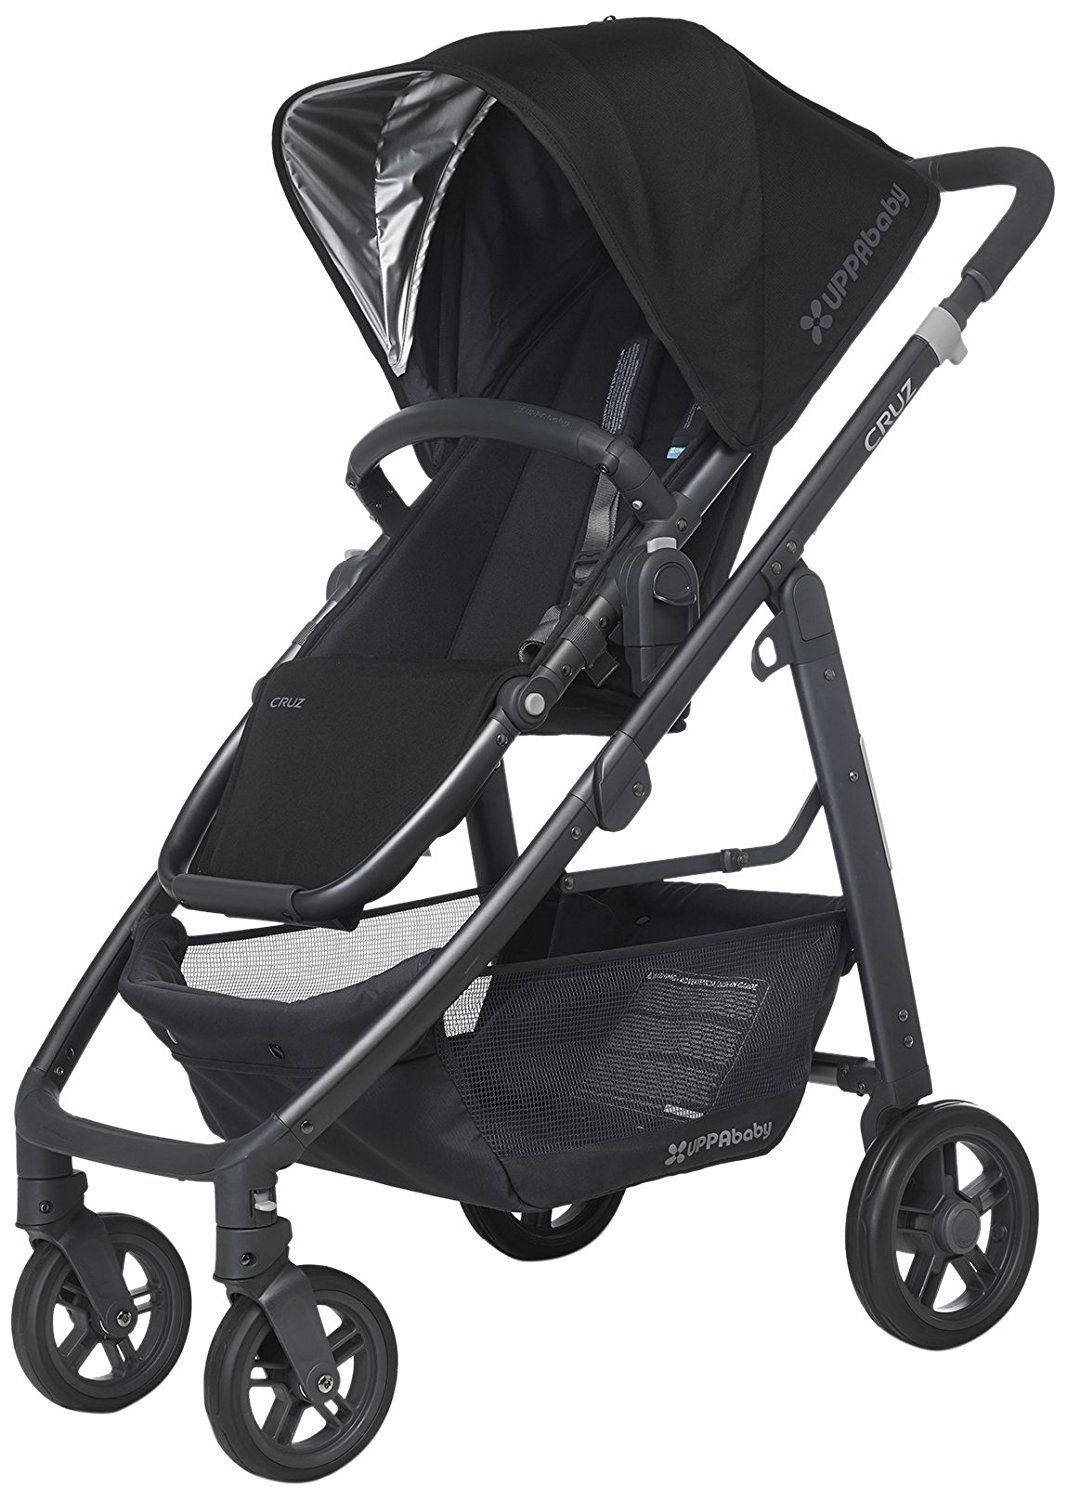 UPPAbaby Cruz Pushchair, Jake Black. A pushchair with all